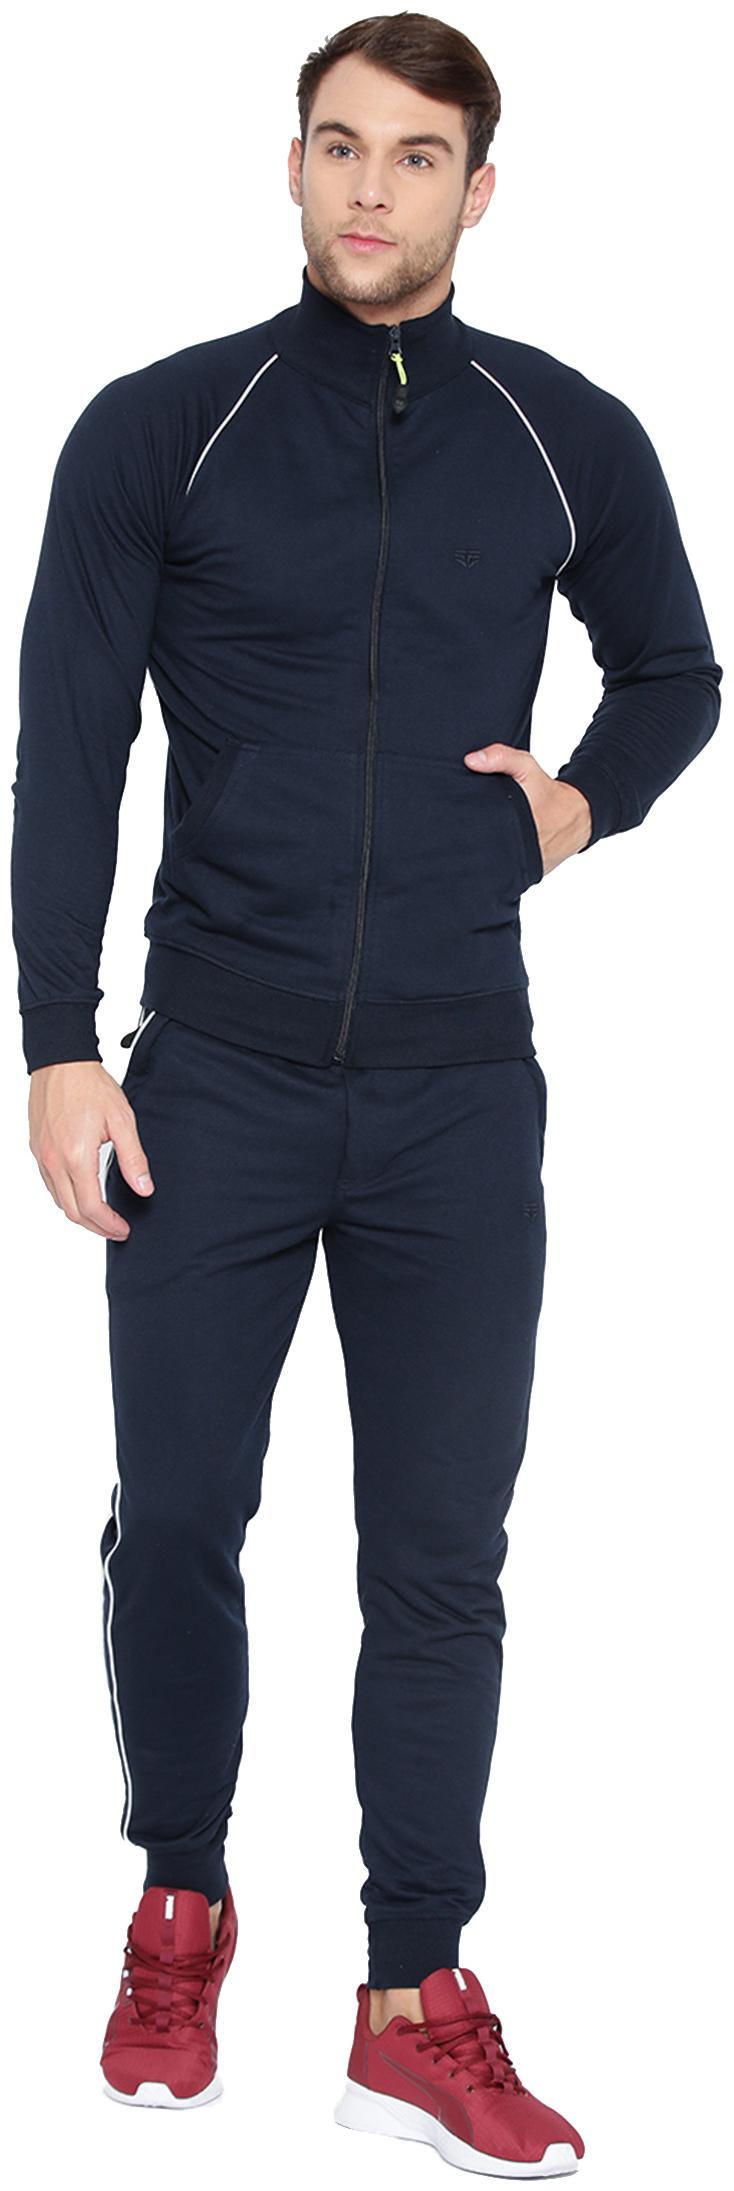 Sports52 wear Men Poly Cotton Tracksuits